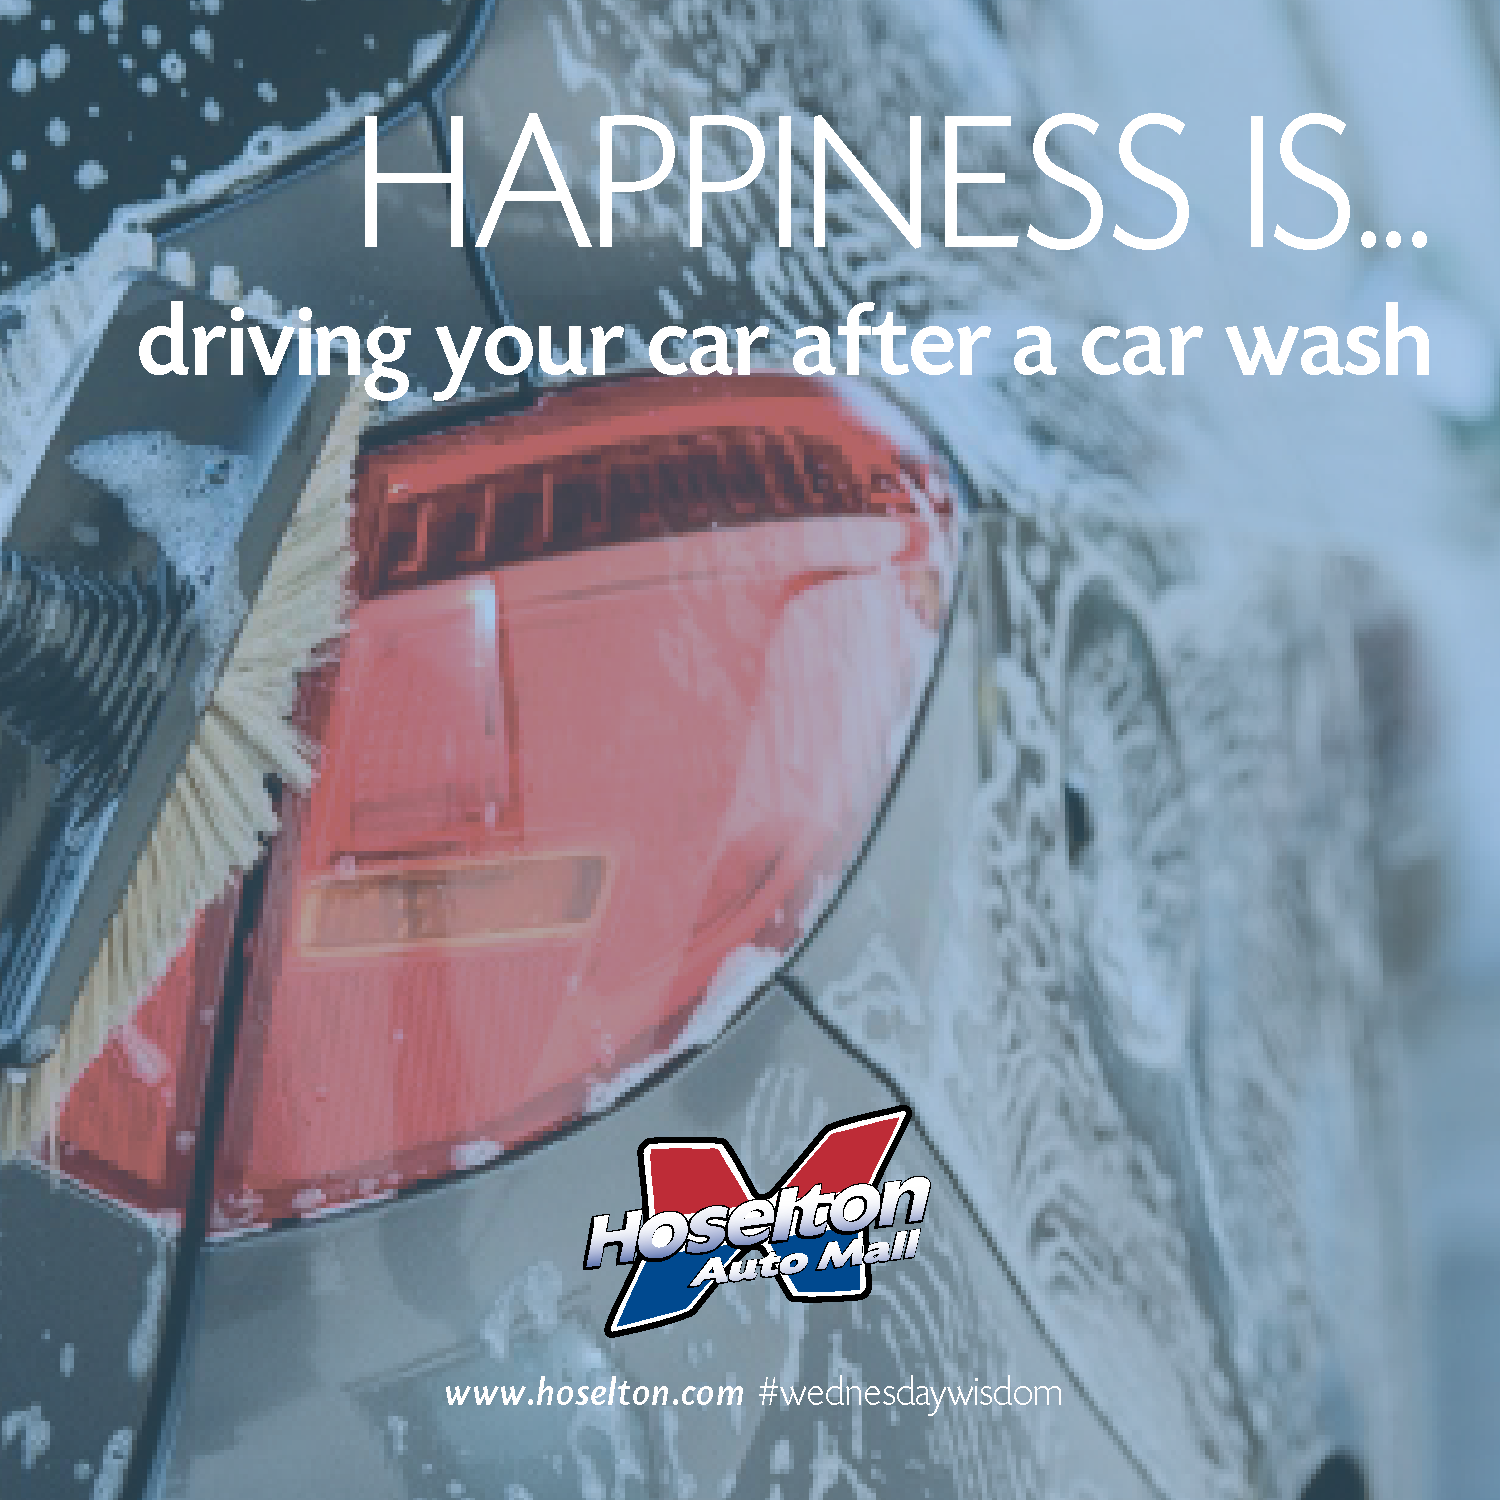 Car Wash Quotes Happiness Is Driving Your Car After A Car Wash Wednesdaywisdom